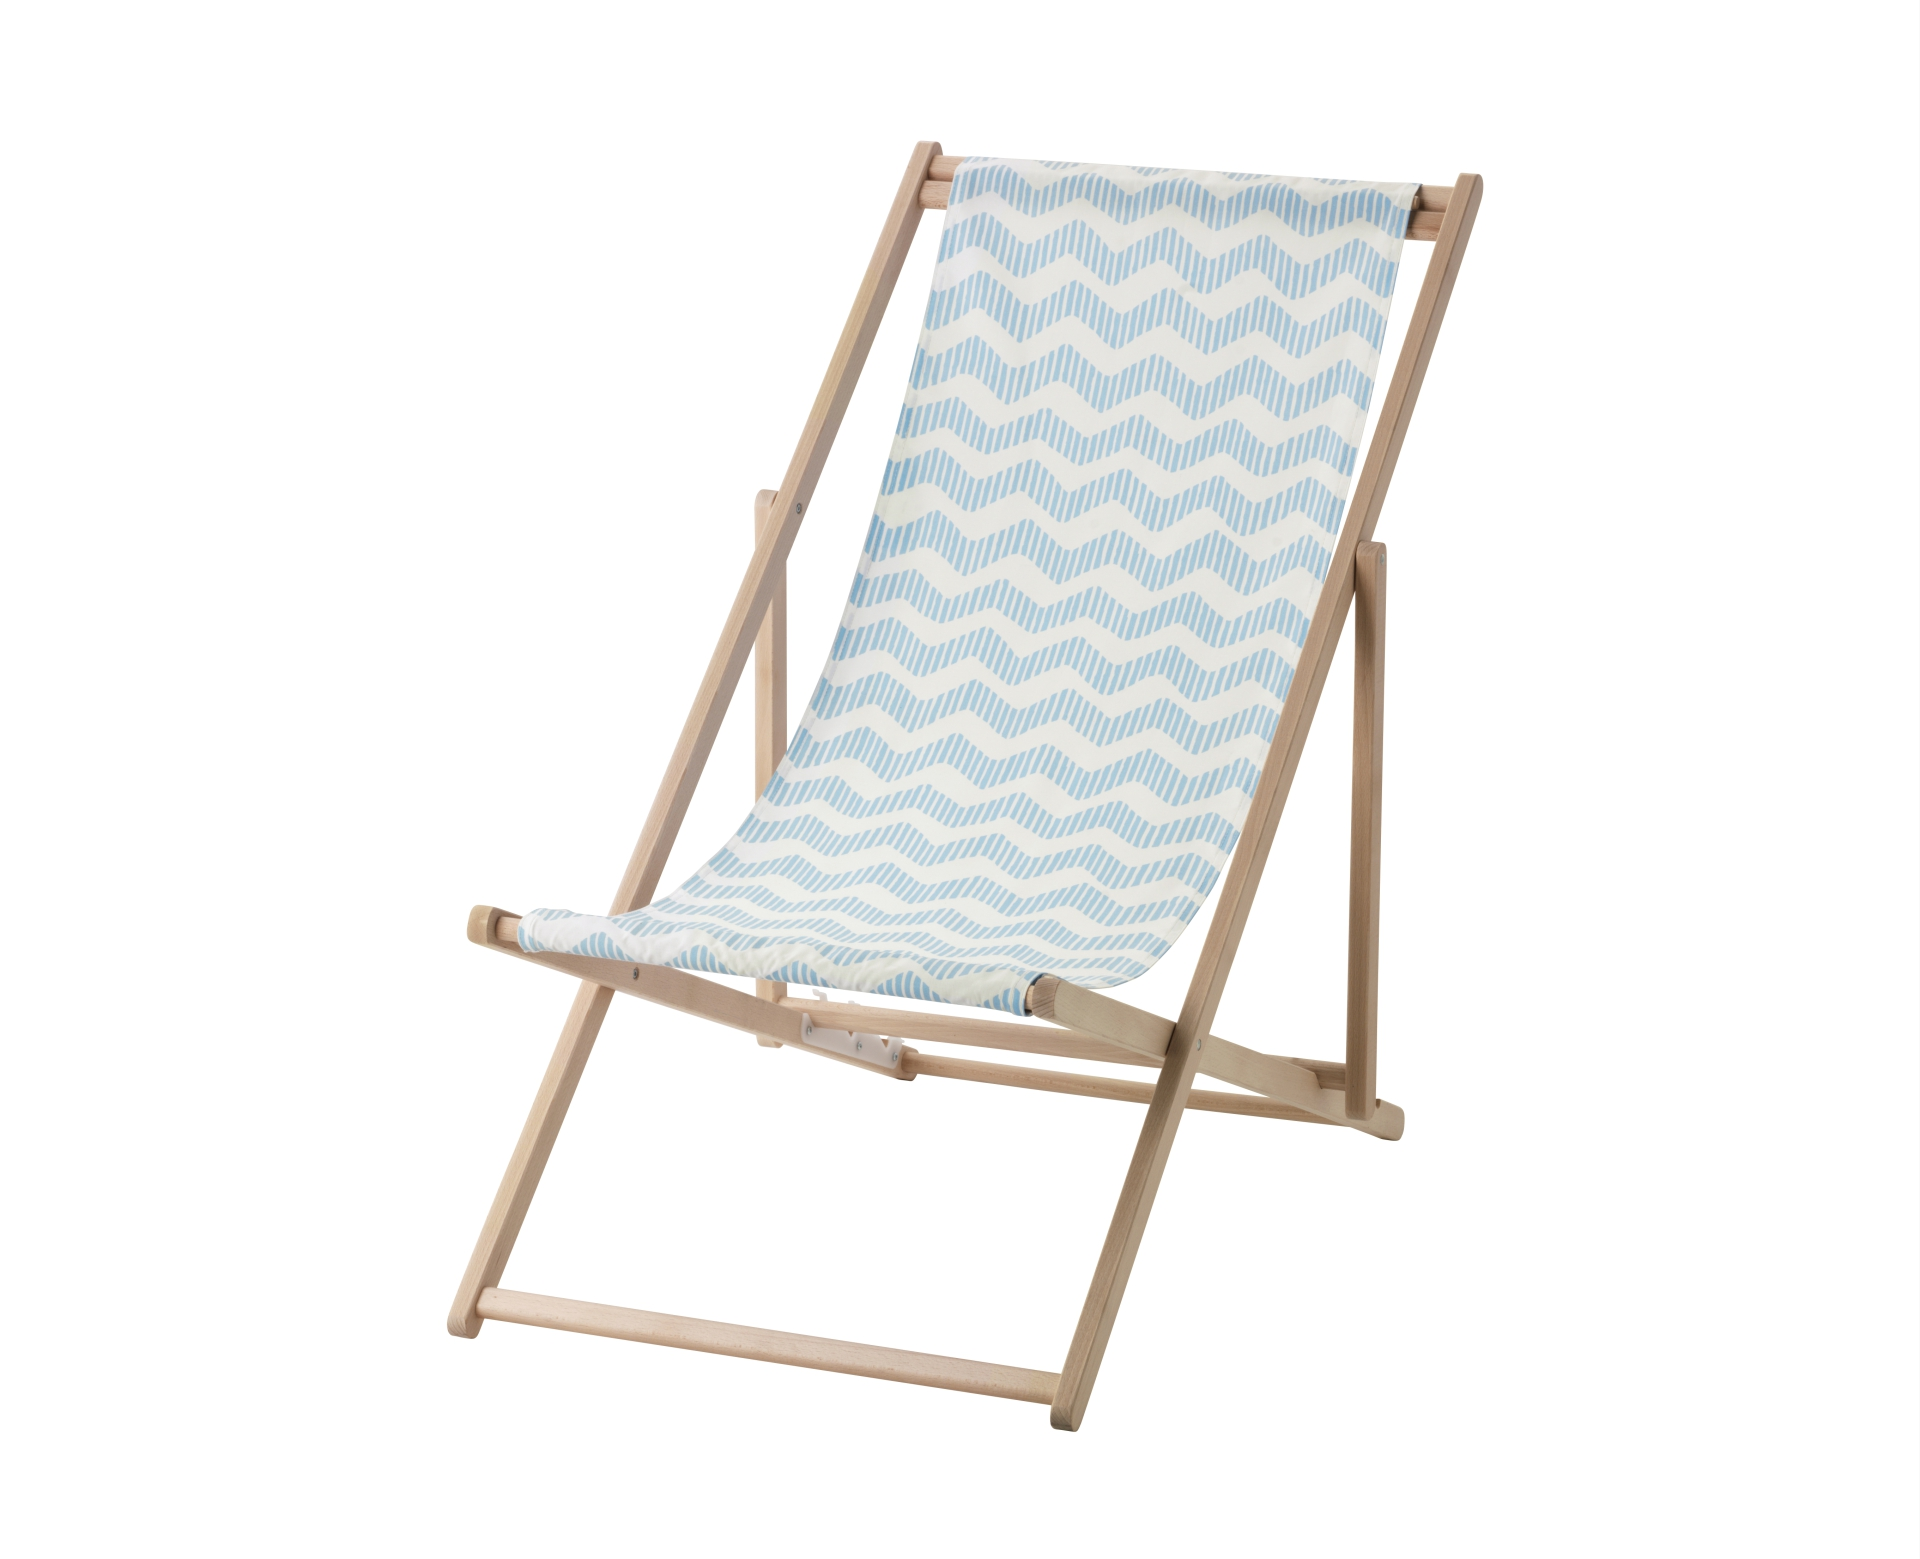 Folding Wood Beach Chair Ikea Recalls Beach Chairs Due To Fall And Fingertip Amputation